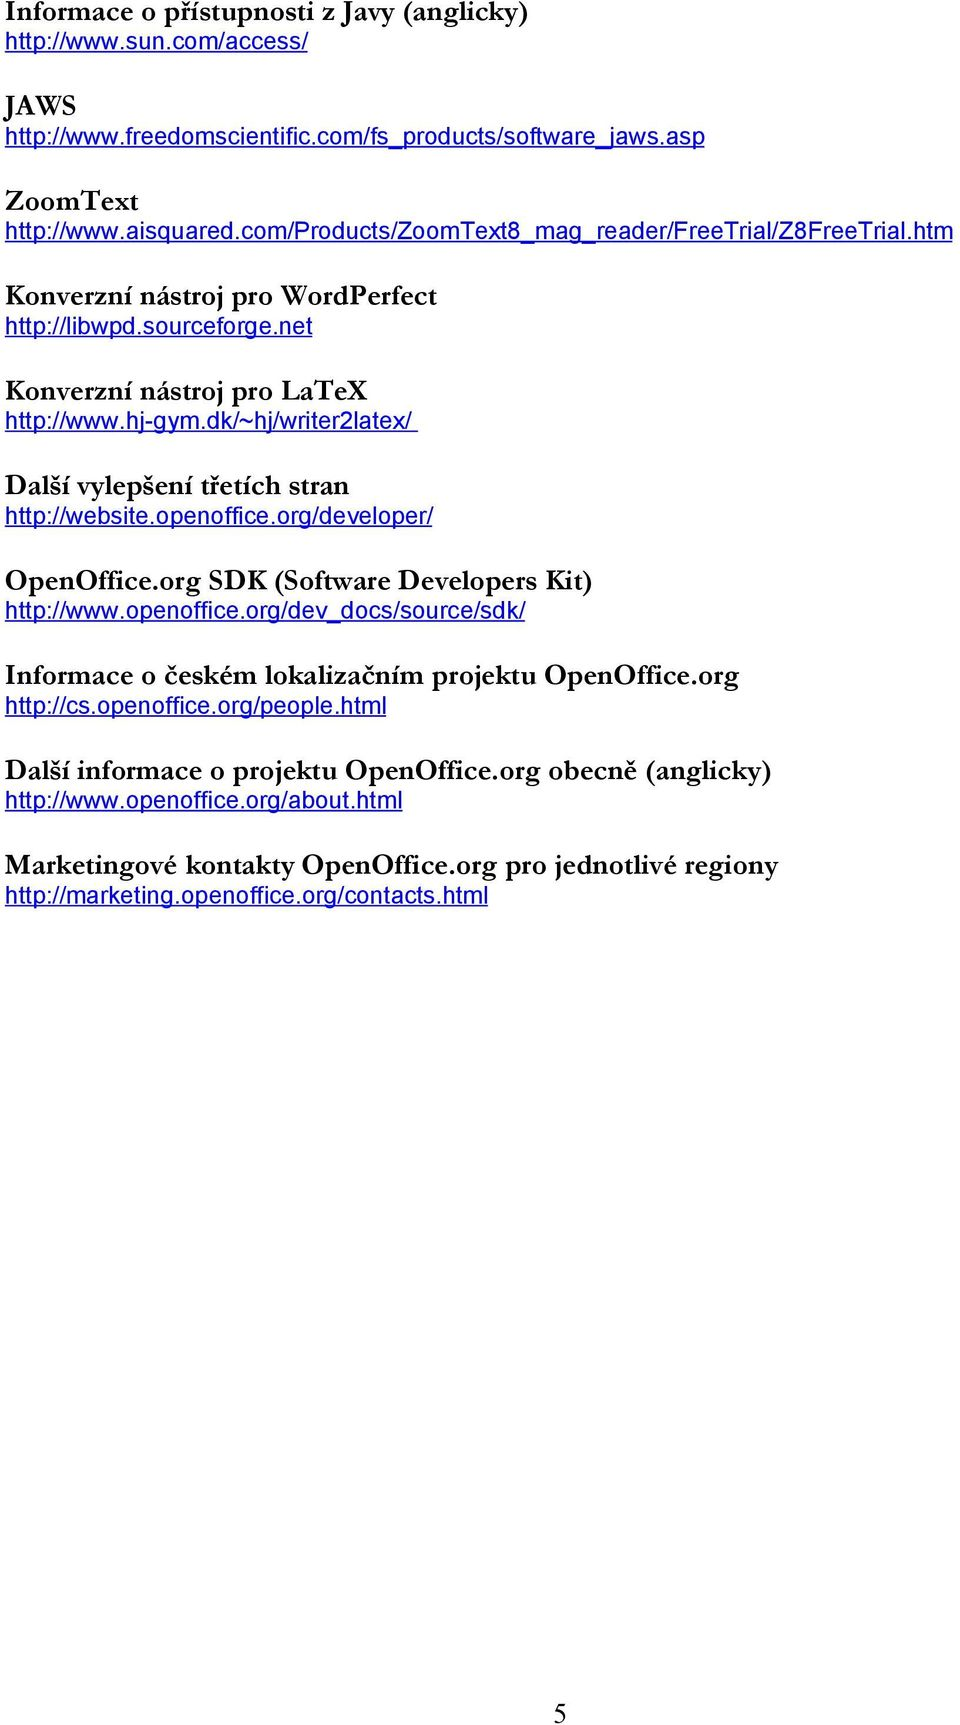 dk/~hj/writer2latex/ Další vylepšení třetích stran http://website.openoffice.org/developer/ OpenOffice.org SDK (Software Developers Kit) http://www.openoffice.org/dev_docs/source/sdk/ Informace o českém lokalizačním projektu OpenOffice.